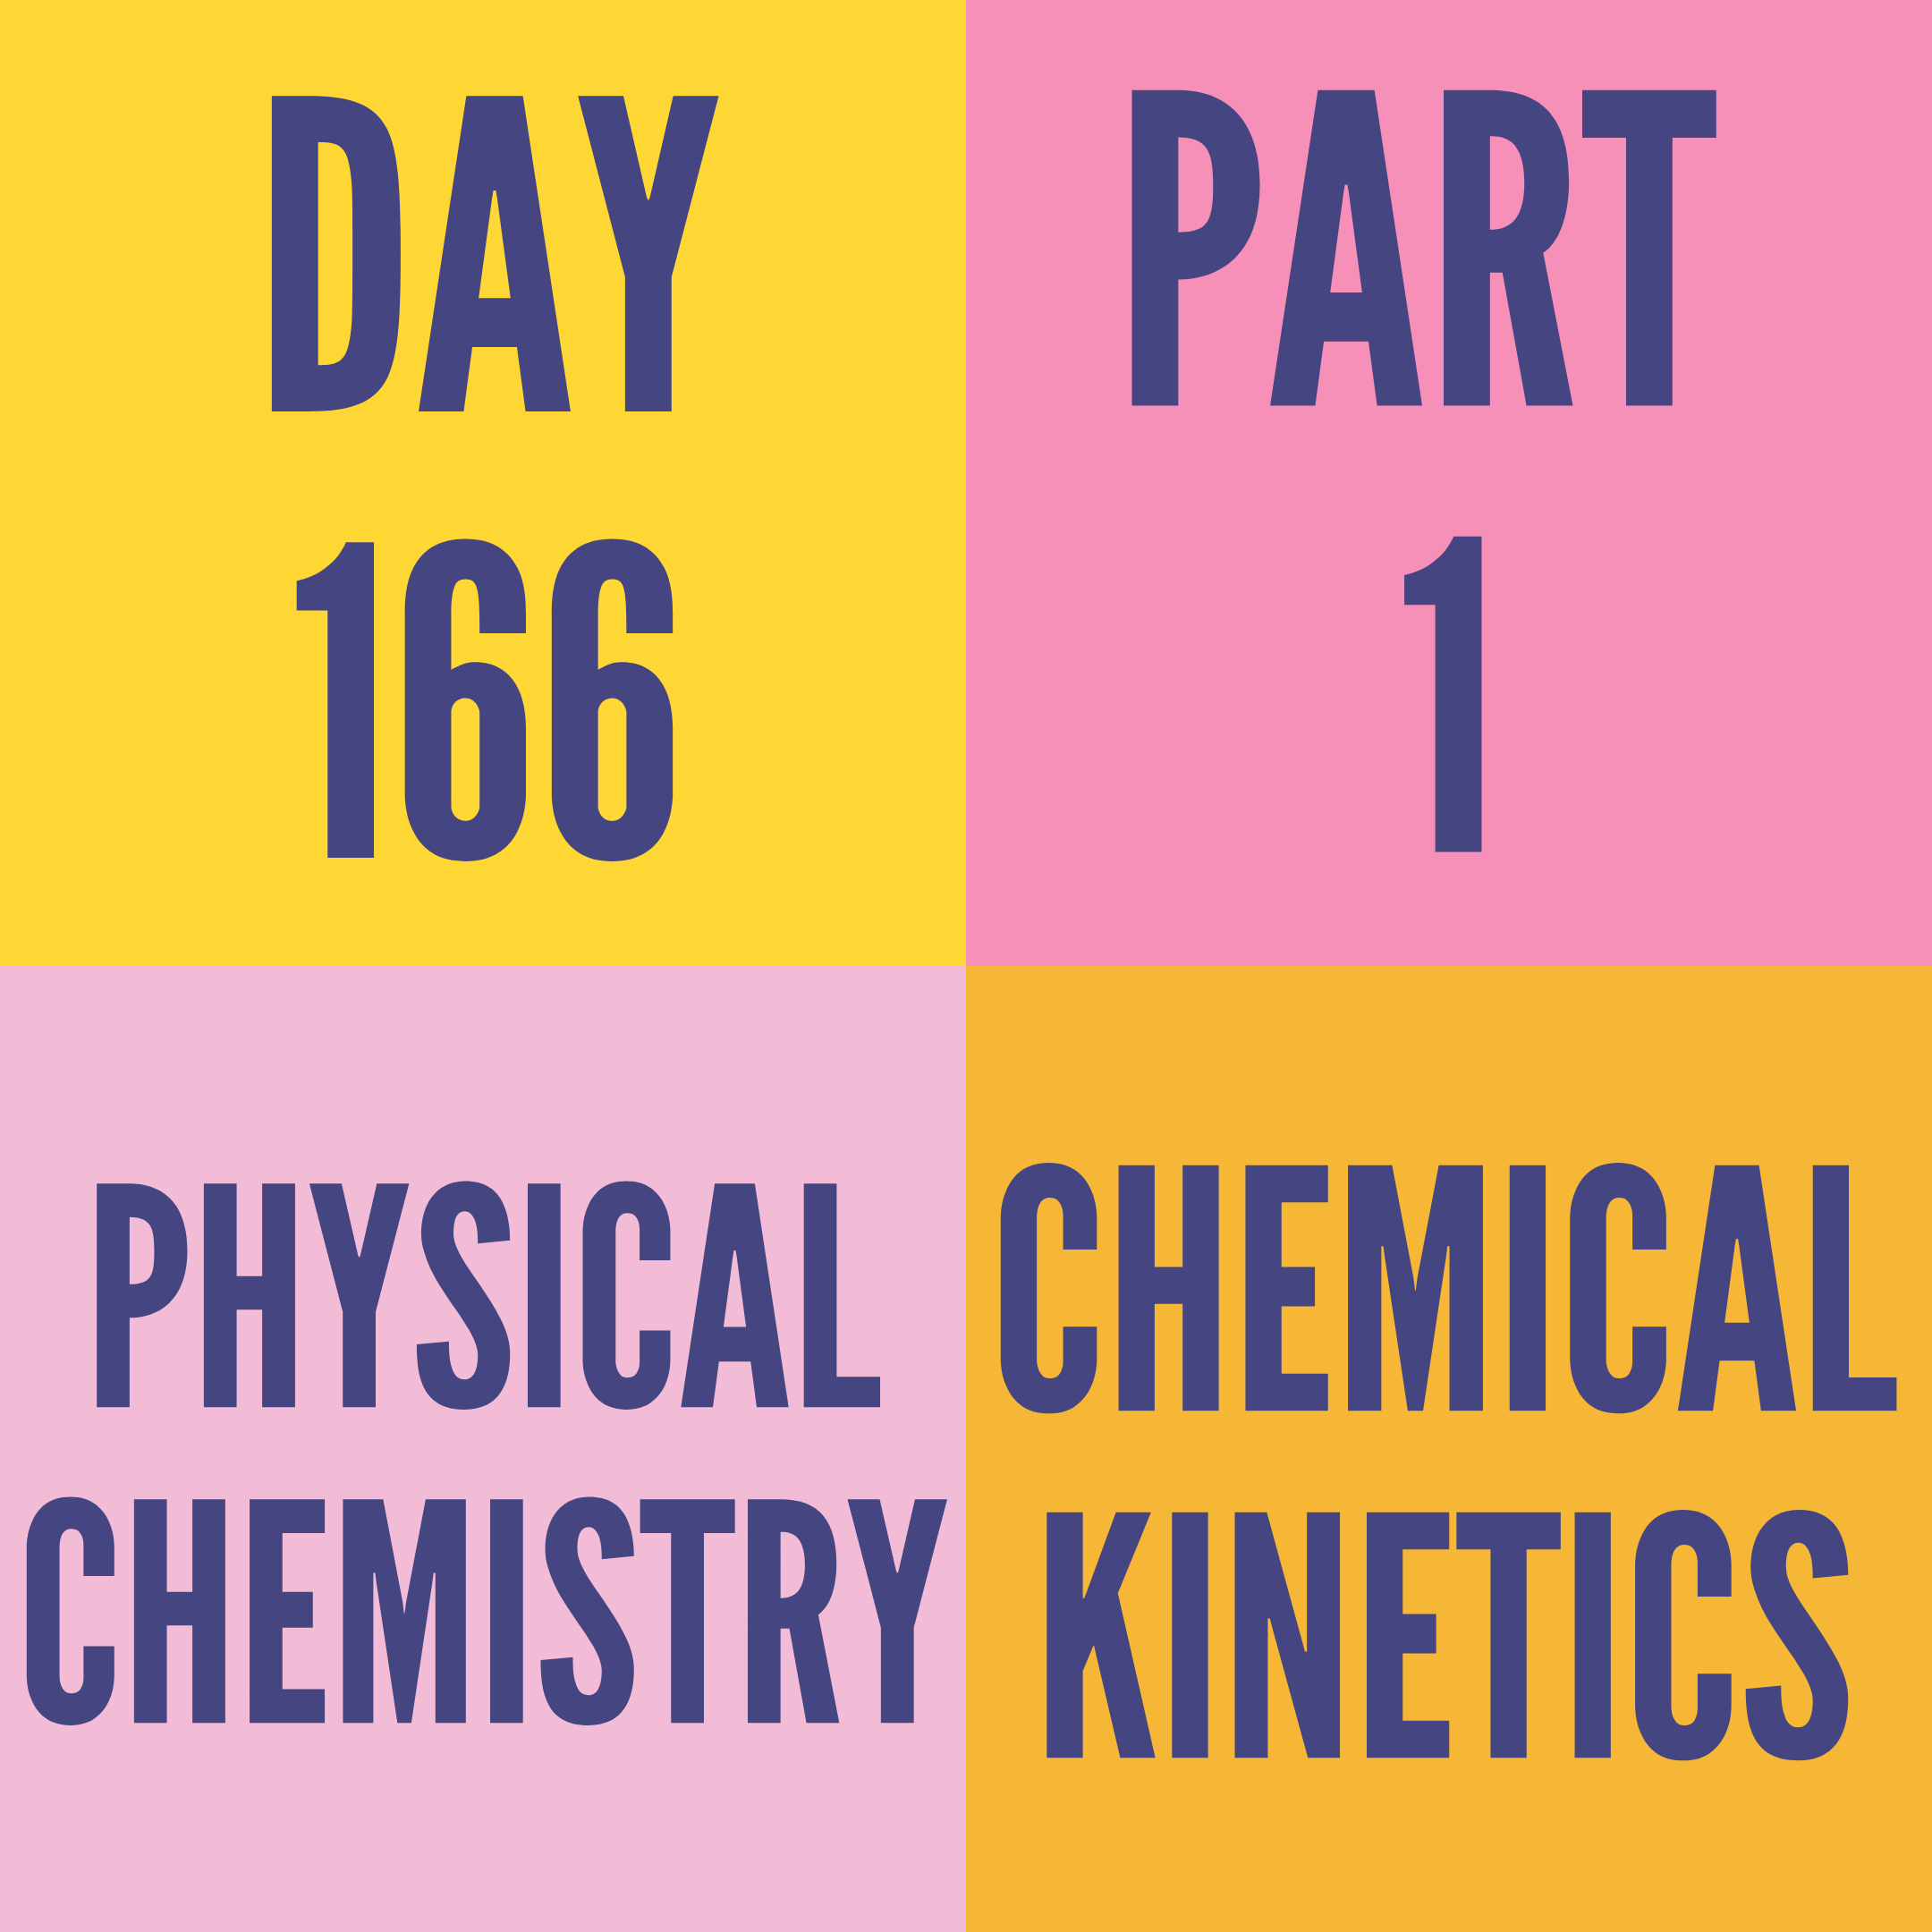 DAY-166 PART-1 CHEMICAL KINETICS